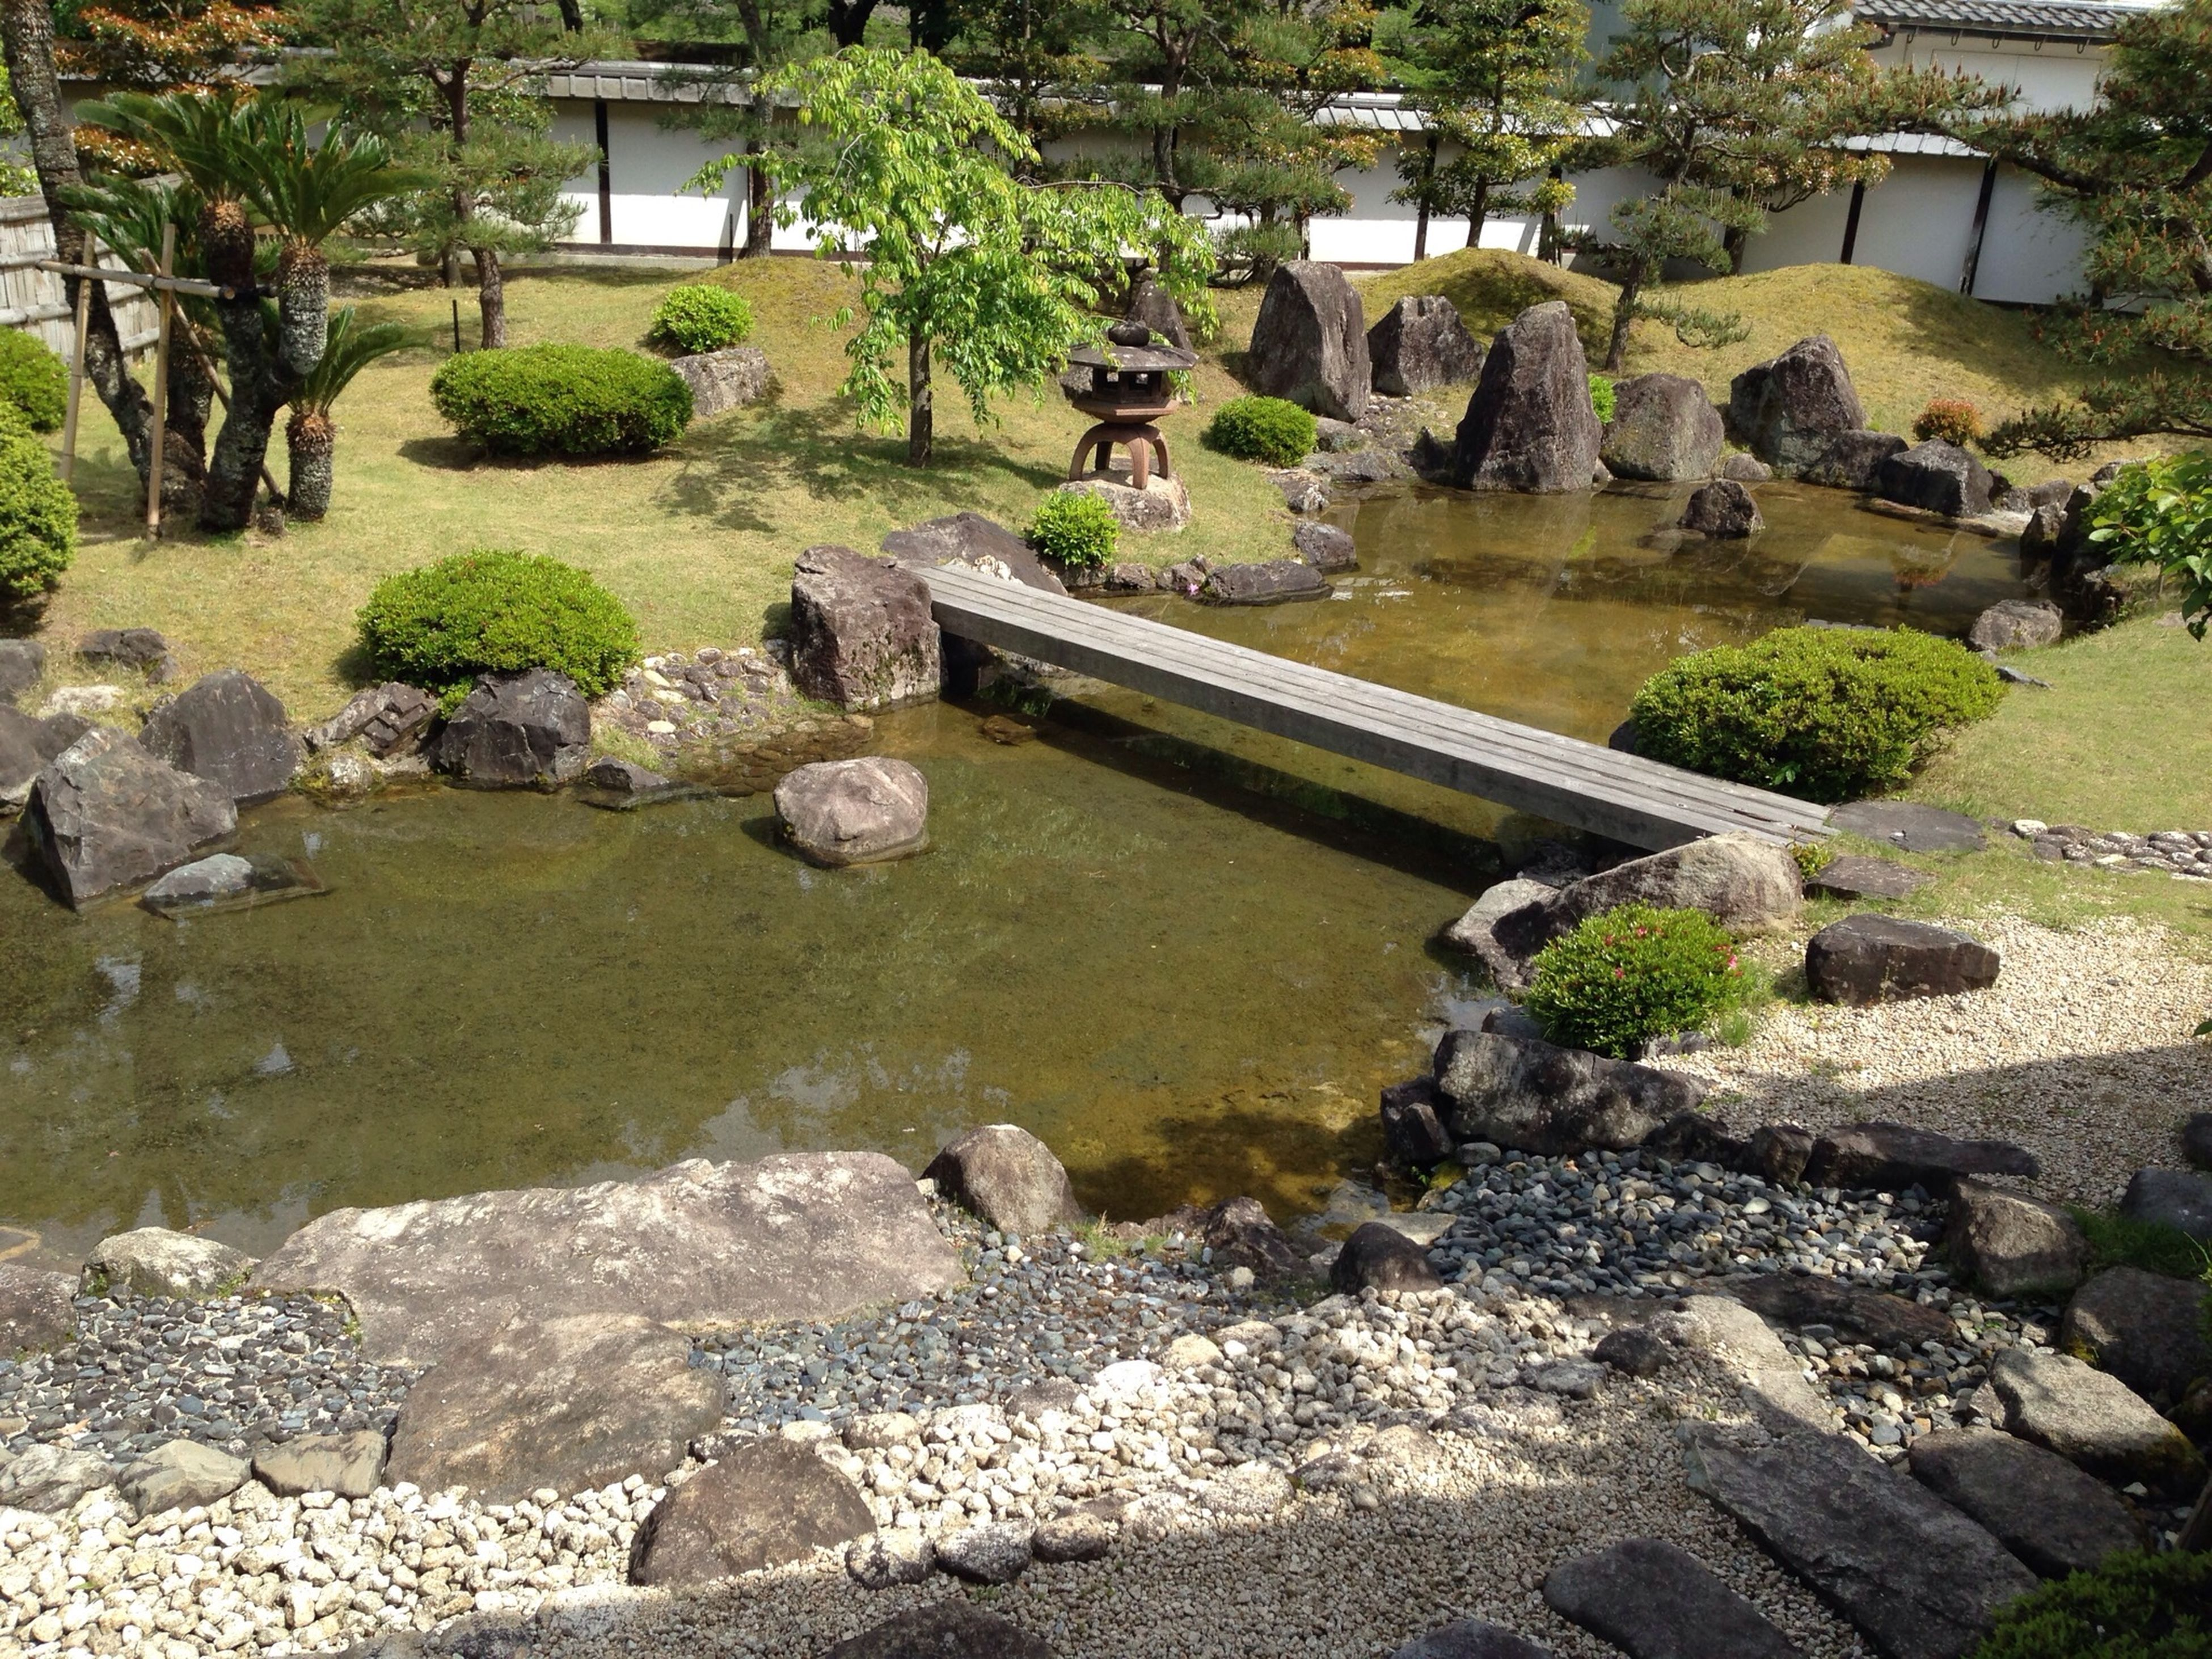 water, rock - object, bridge - man made structure, stream, connection, river, stone - object, nature, tree, flowing water, tranquility, built structure, reflection, flowing, arch bridge, tranquil scene, stone, green color, scenics, plant